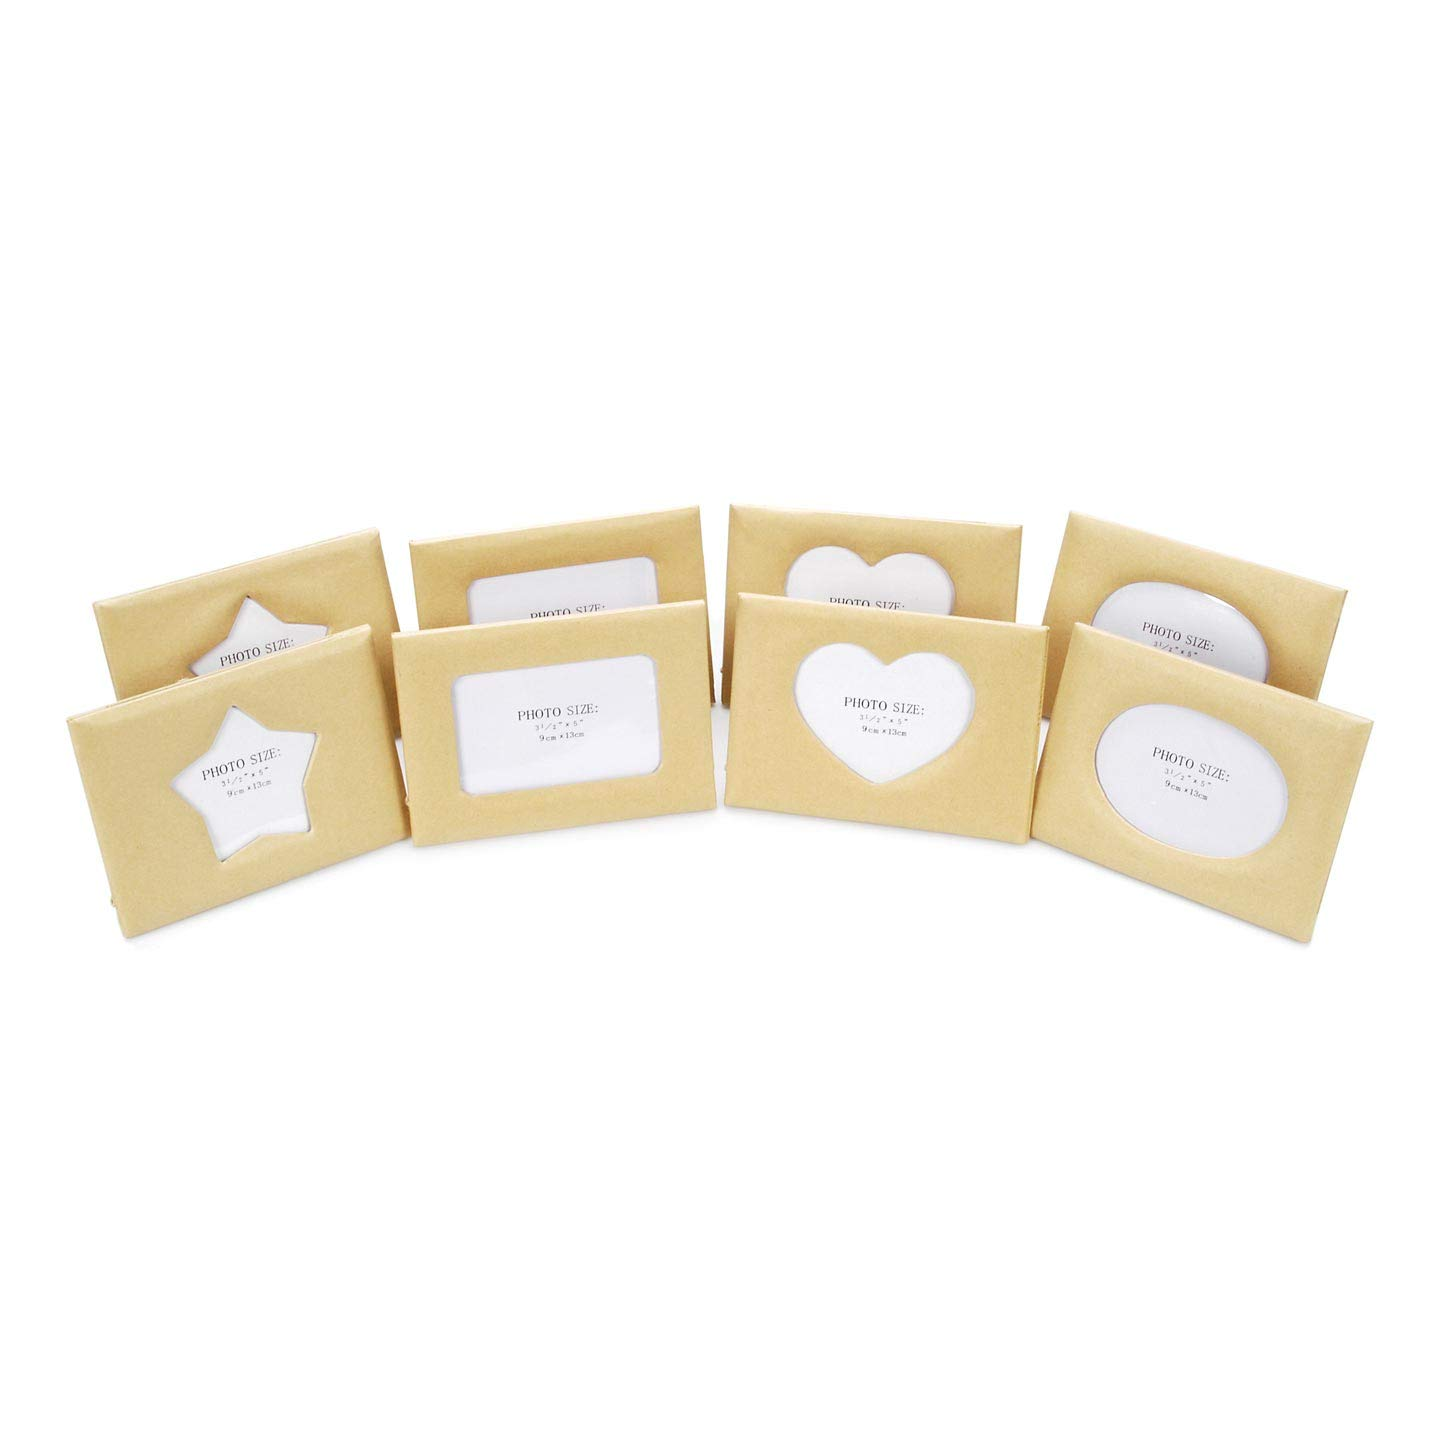 edf605970bd Amazon.com - Darice Bulk Buy DIY Crafts Paper Mache Frames Assorted Styles  5 x 7 inches 8 pieces (2-Pack) 1166-BV -